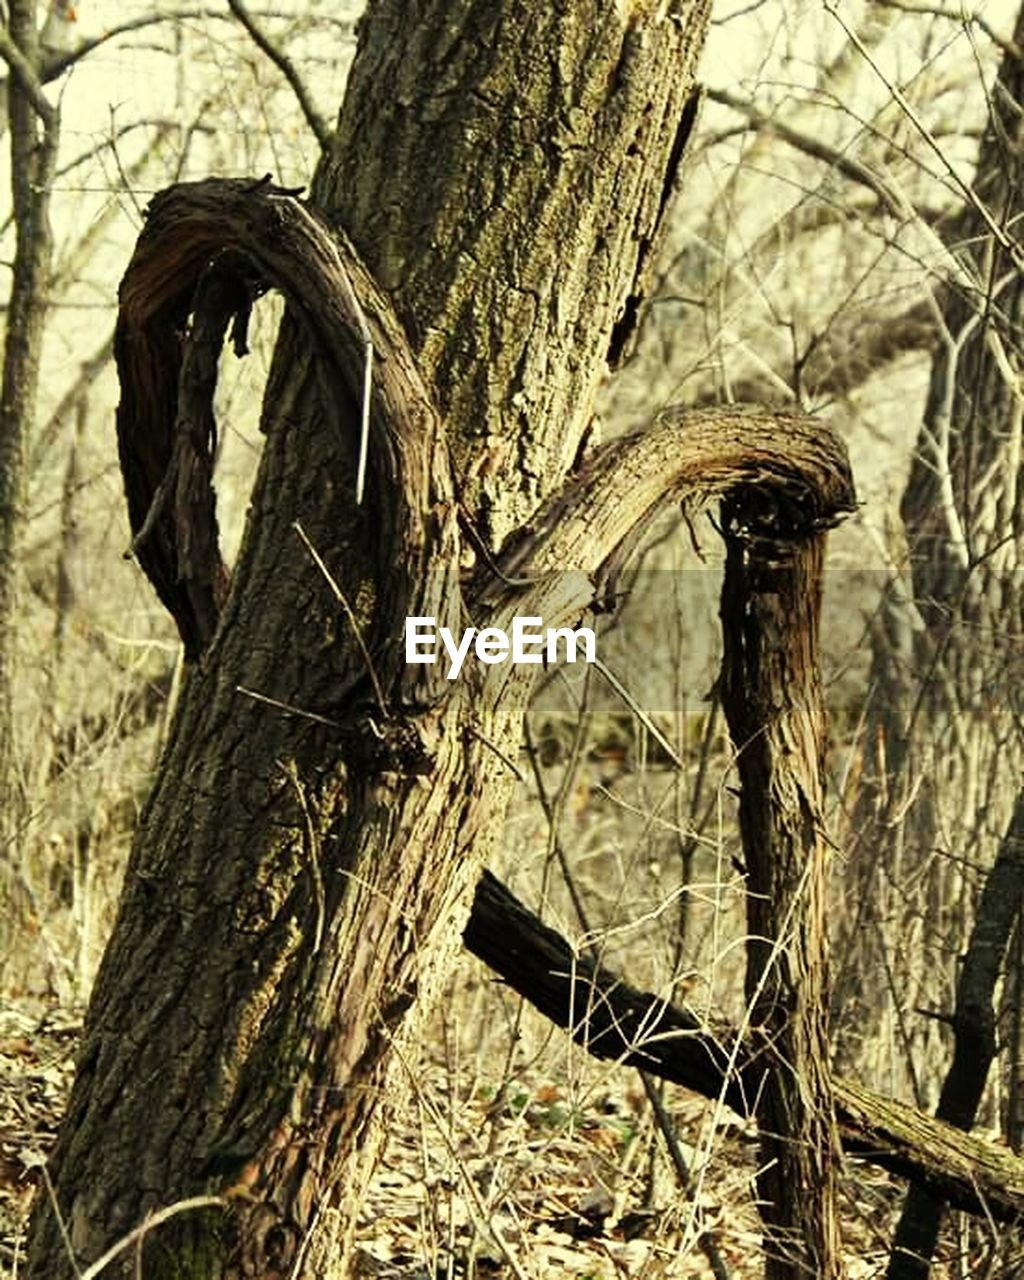 tree trunk, tree, dead plant, nature, day, no people, outdoors, focus on foreground, branch, dried plant, dead tree, growth, close-up, beauty in nature